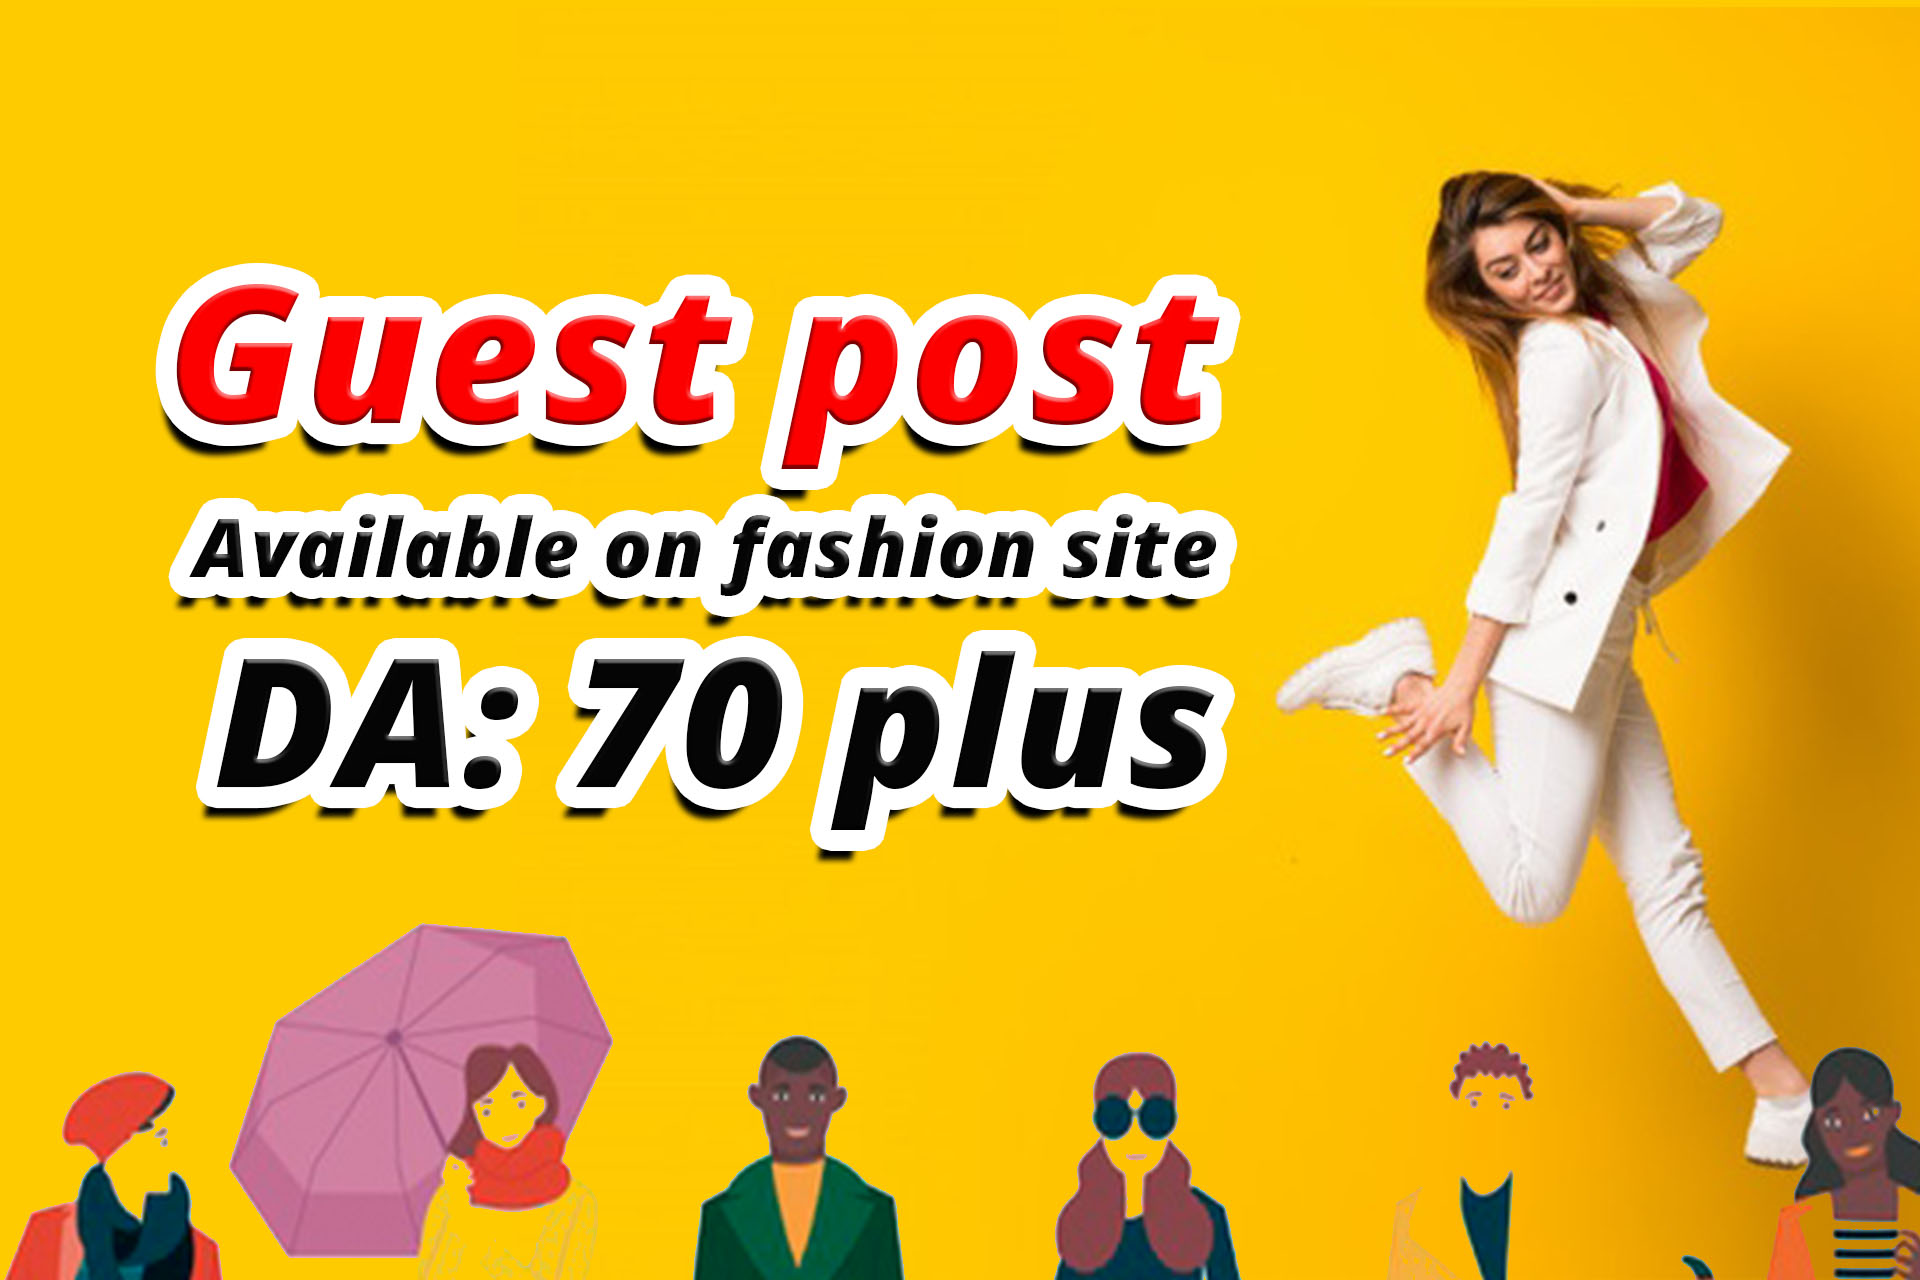 Write and Publish Fashion Guest Post available on DA 70 plus